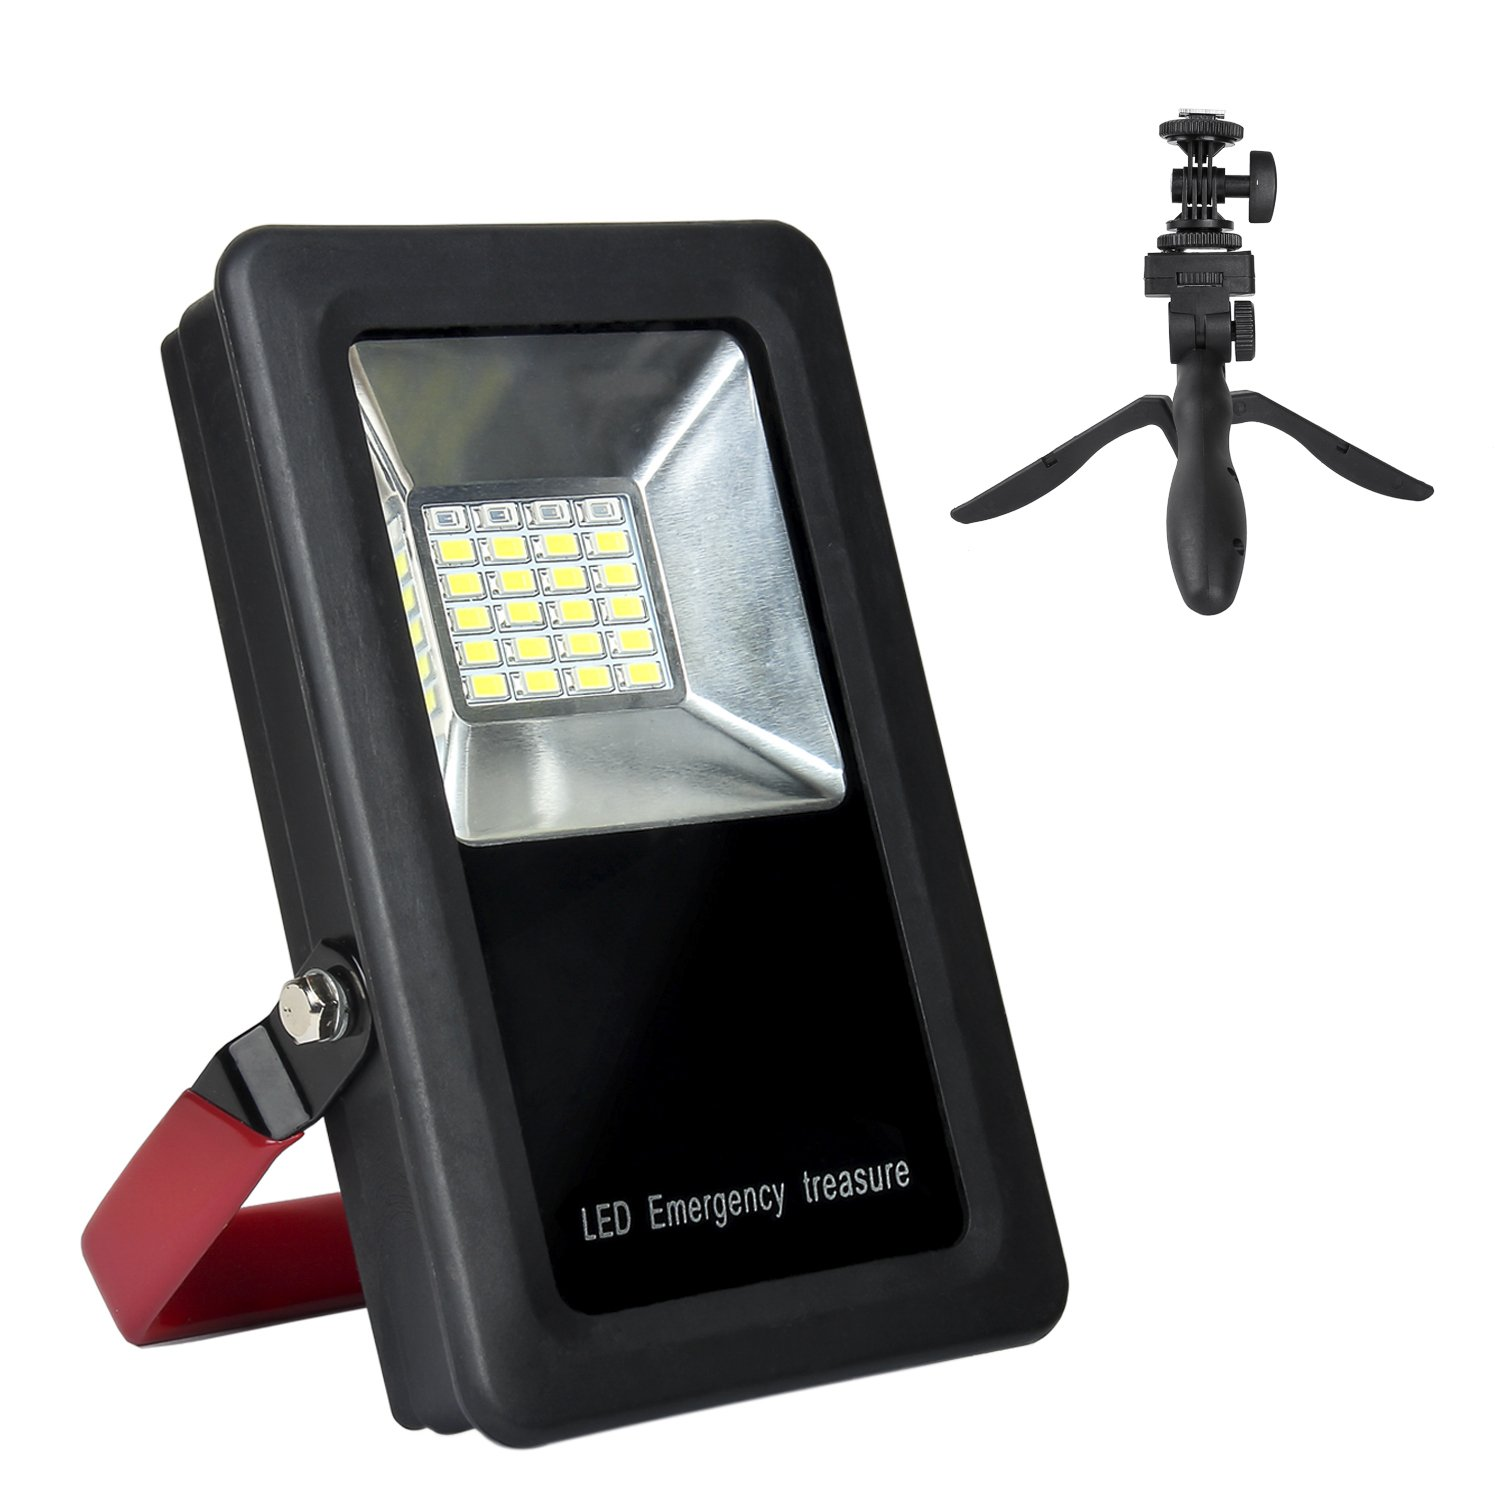 TBTeek LED Work Light 15 W 24 LED 2 USB Ports Cordless Rechargeable LED Flood Light, With Folding Tripod,Battery - Powered Flashlight, Portable & Outdoor & Built-in 6600mah Power Bank